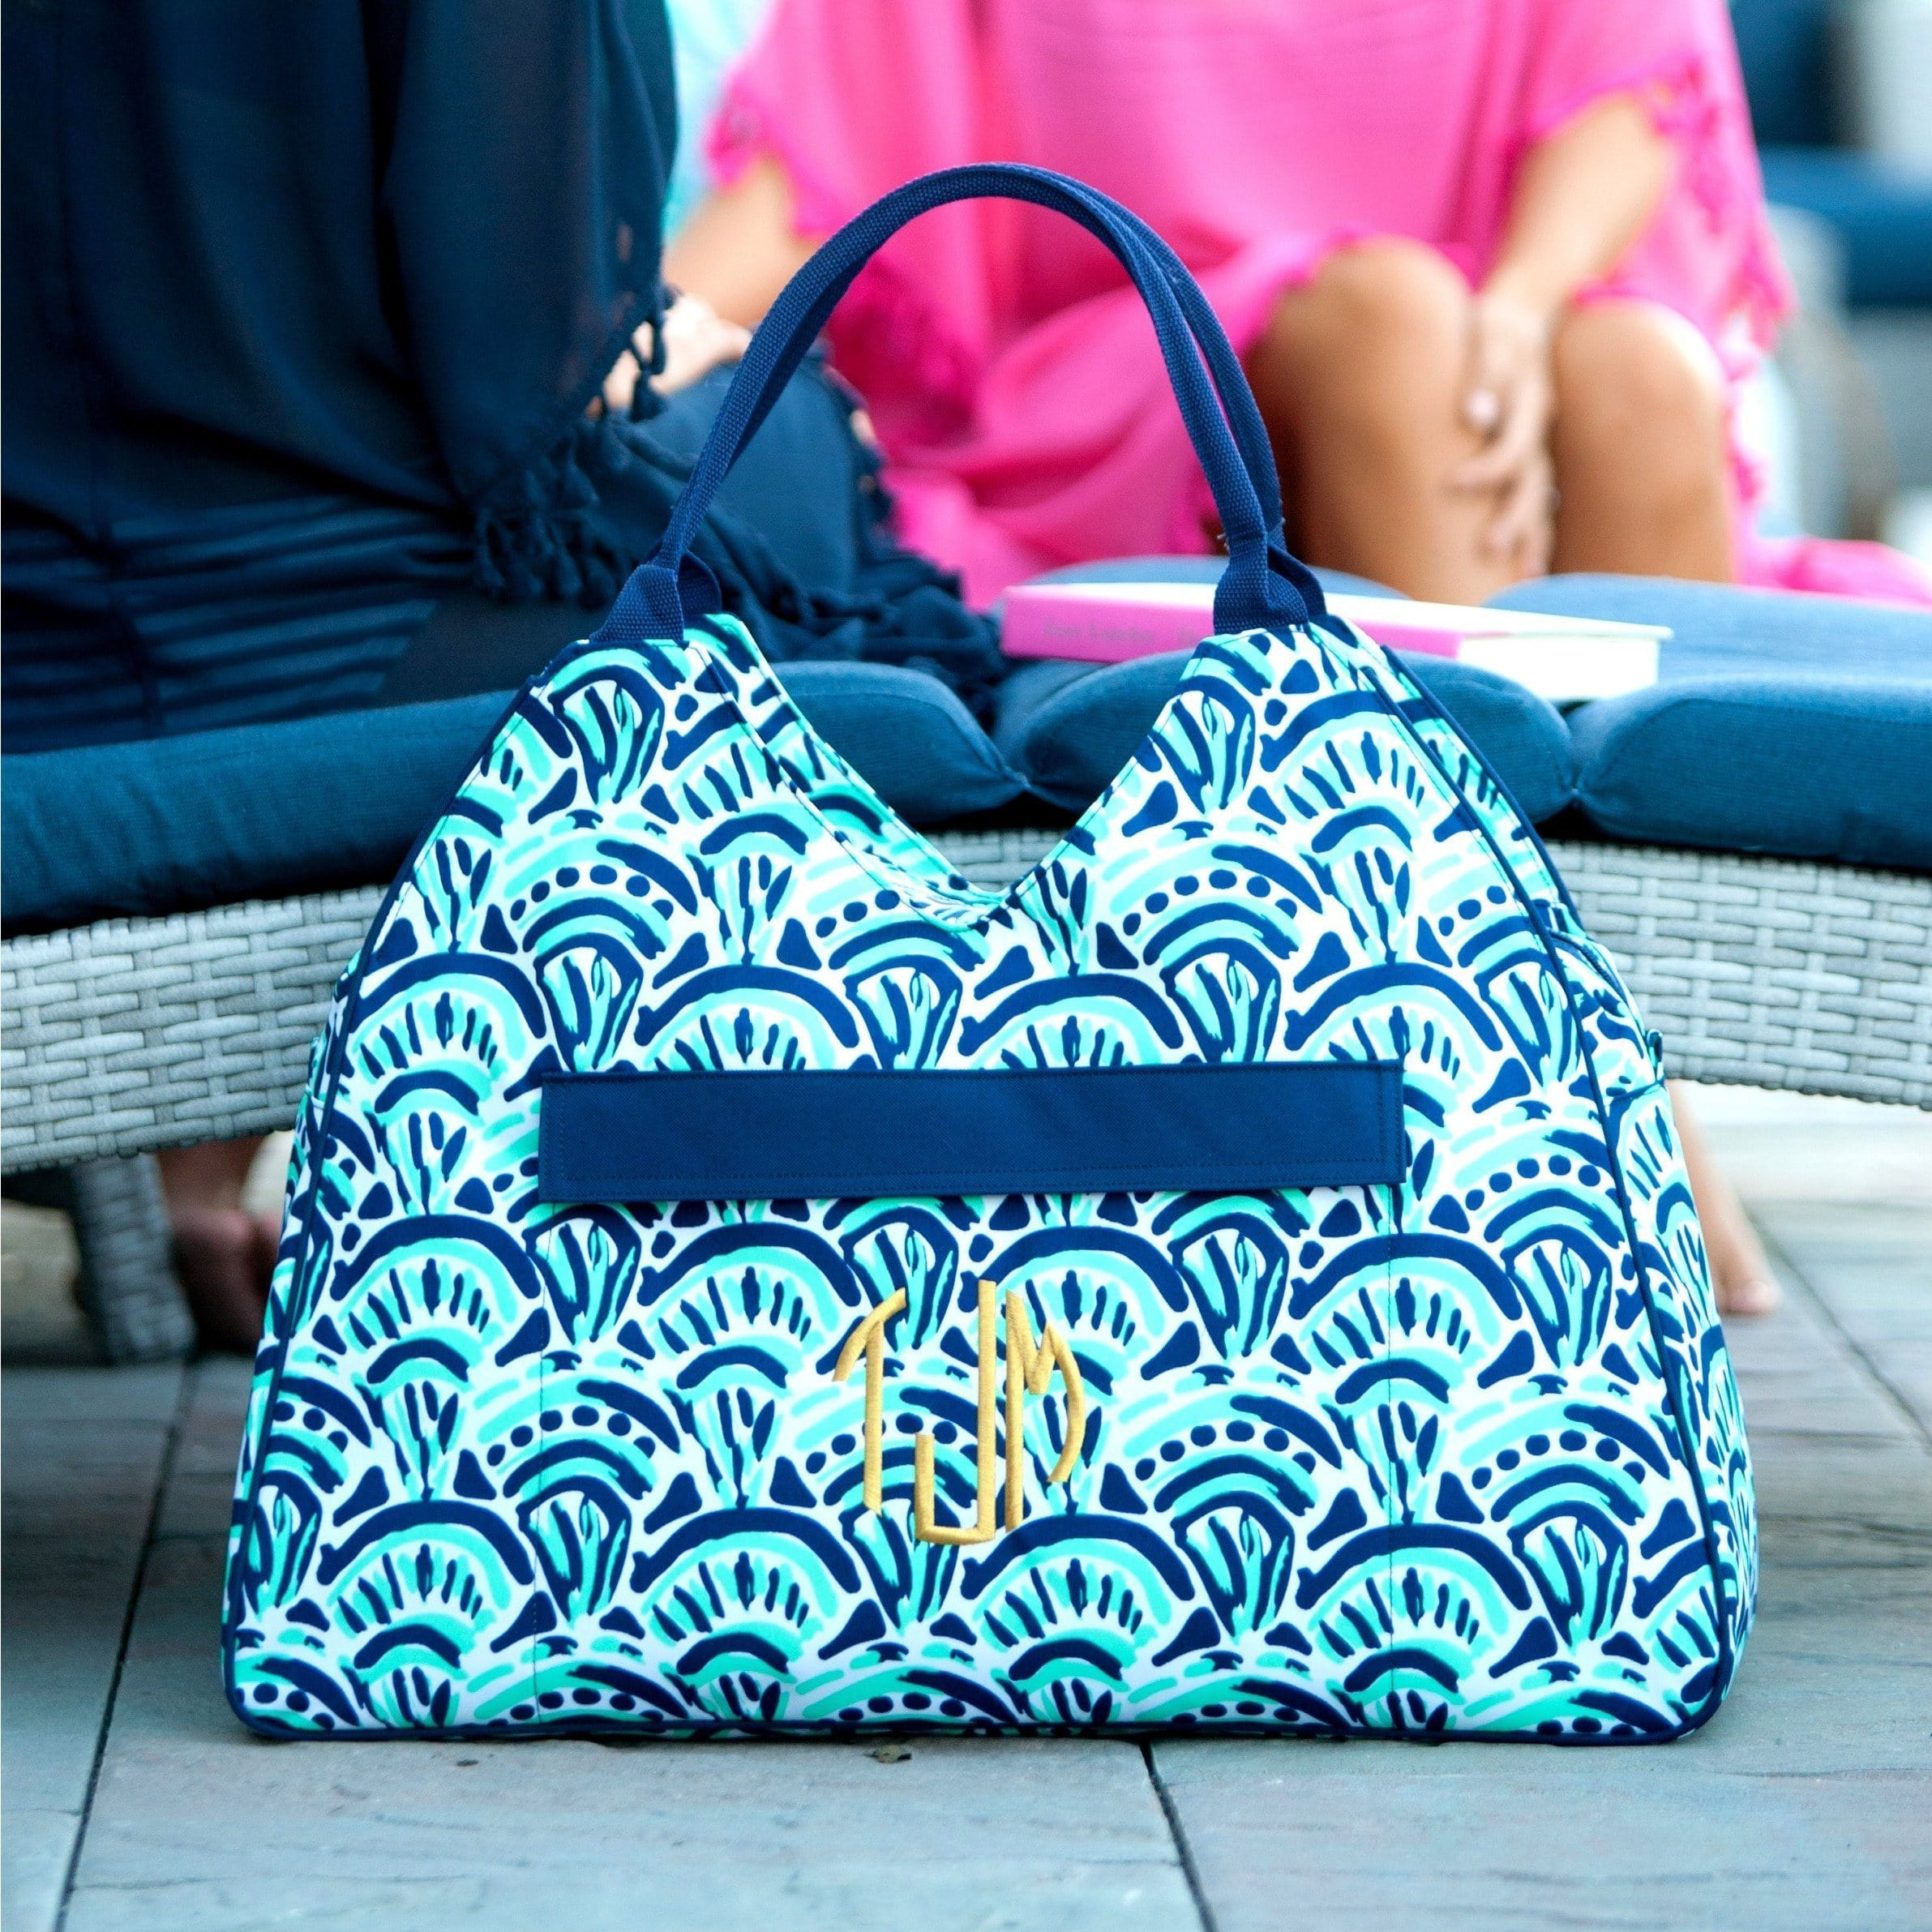 Monogram Beach Bag Tote